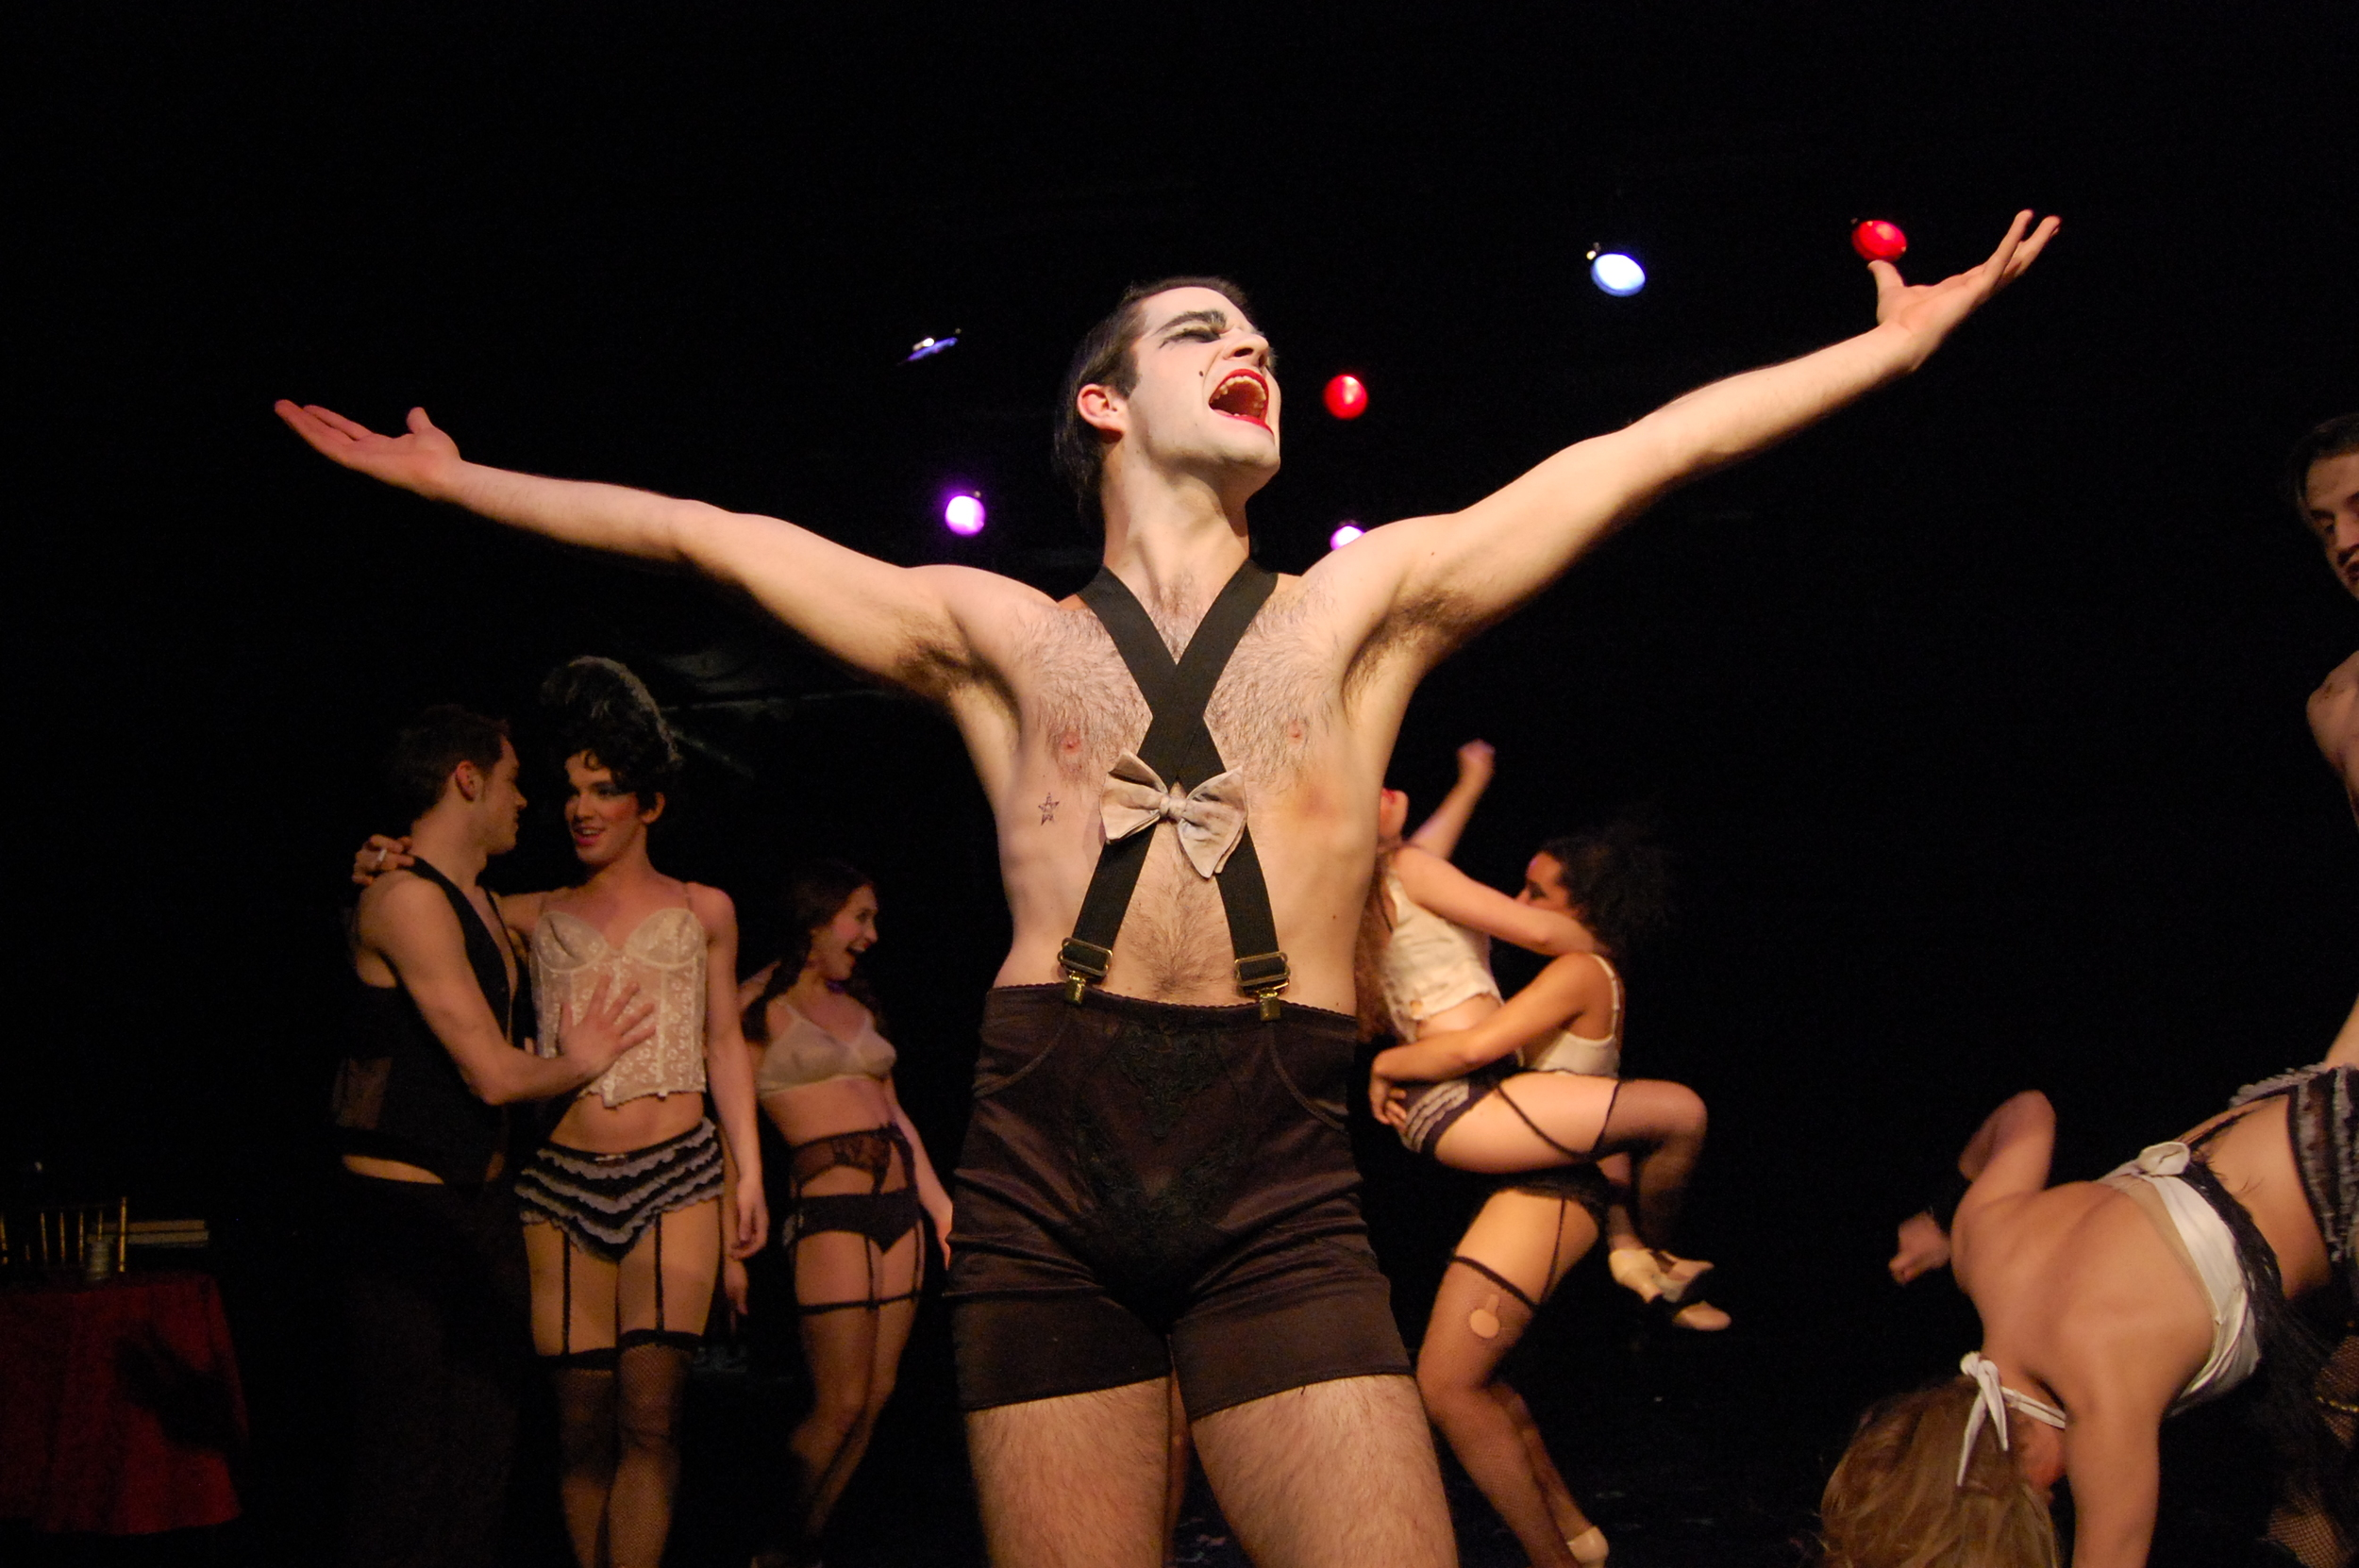 Cabaret. Directed by Daniel George. The Boston Conservatory.